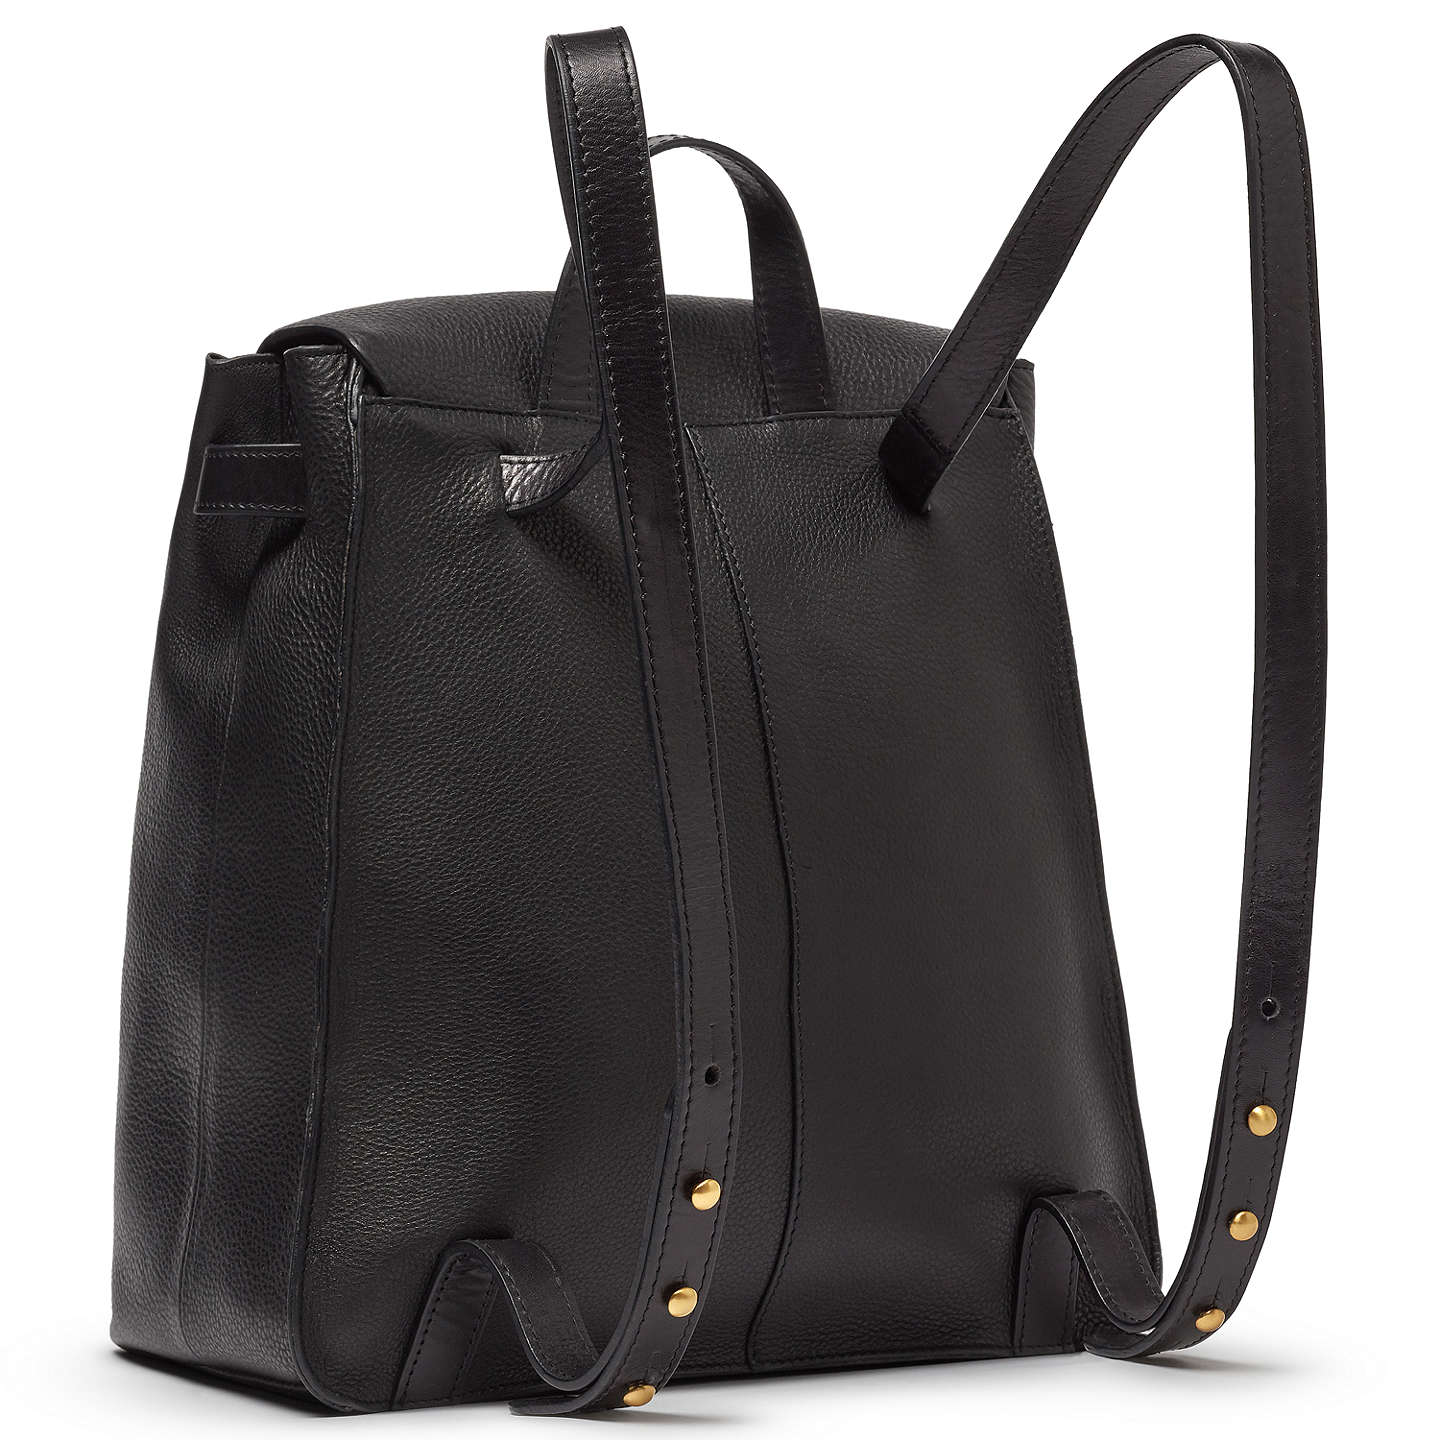 BuyJohn Lewis Rhea Leather Backpack, Black Online at johnlewis.com